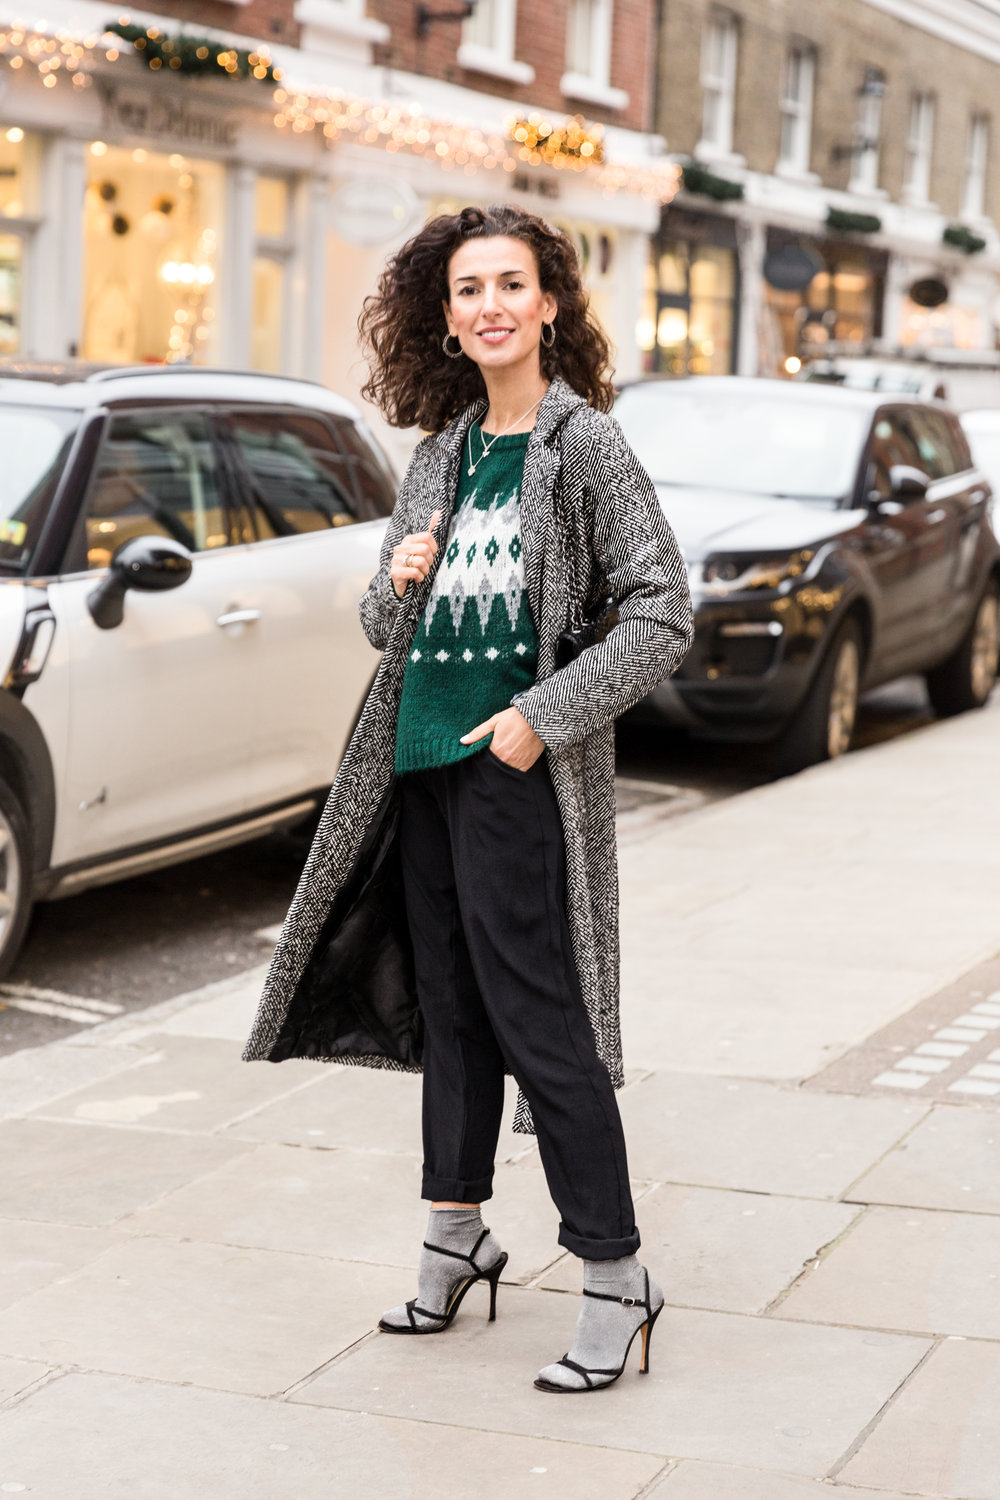 PERFECT XMAS SWEATERDECEMBER 11, 2017 - In winter I always wear fuzzy and cosy sweaters, it´s great! and I just have to think about the bottom: pants or skirt?! and accessories! Hahaha It's really fast!...read more